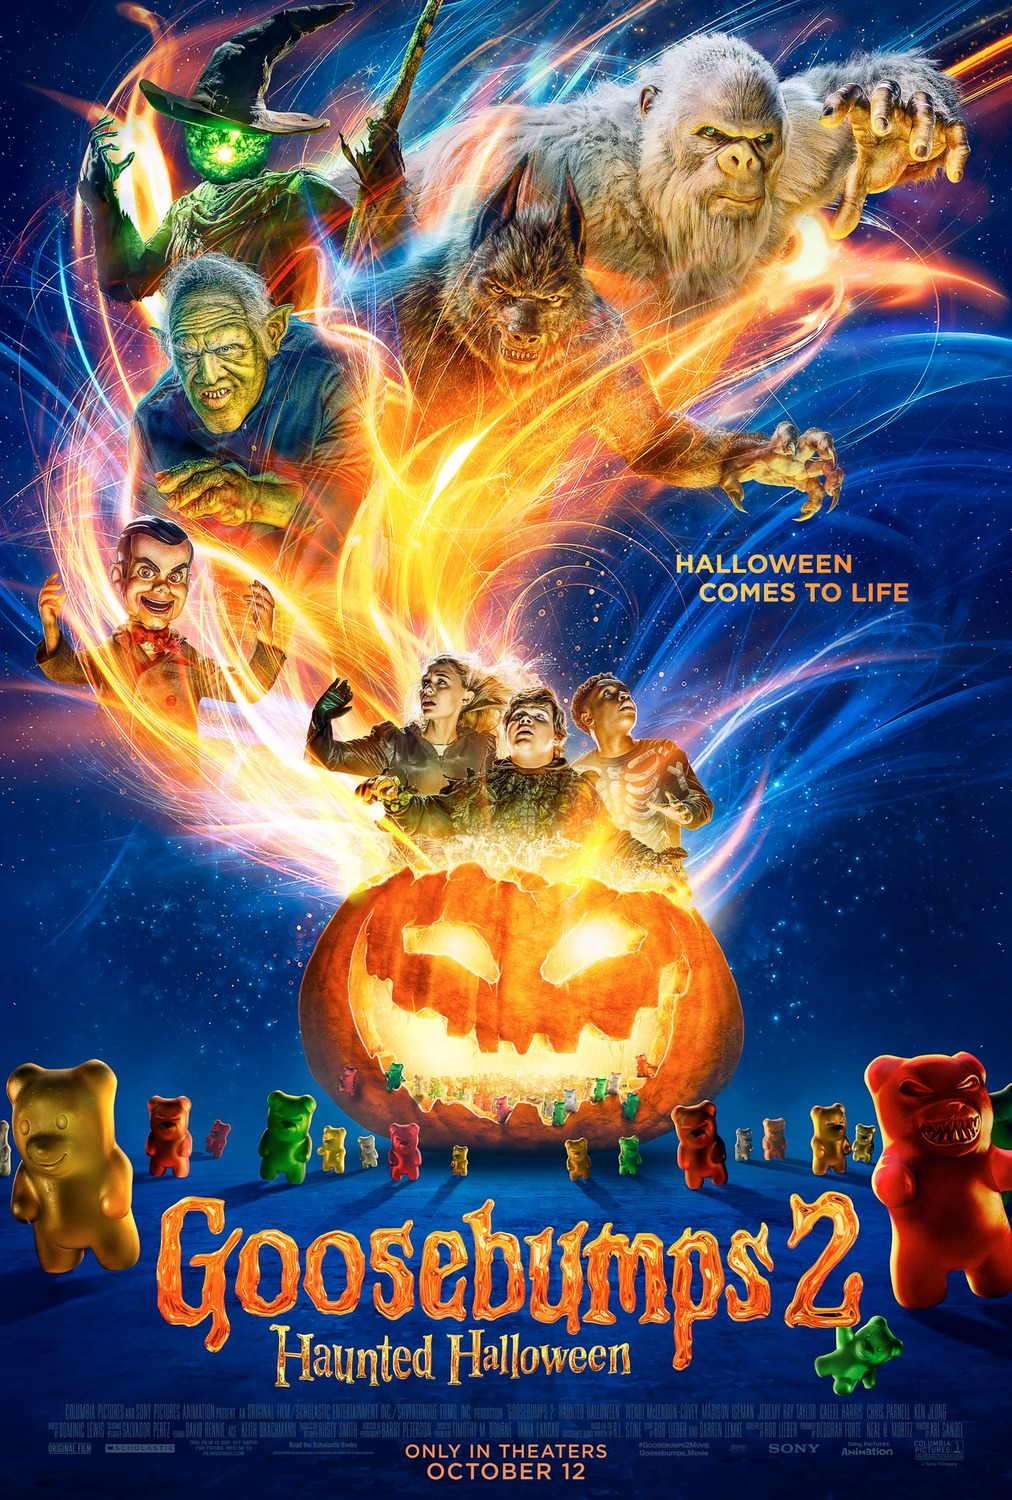 gummy bears and monsters escape 'goosebumps 2: haunted halloween